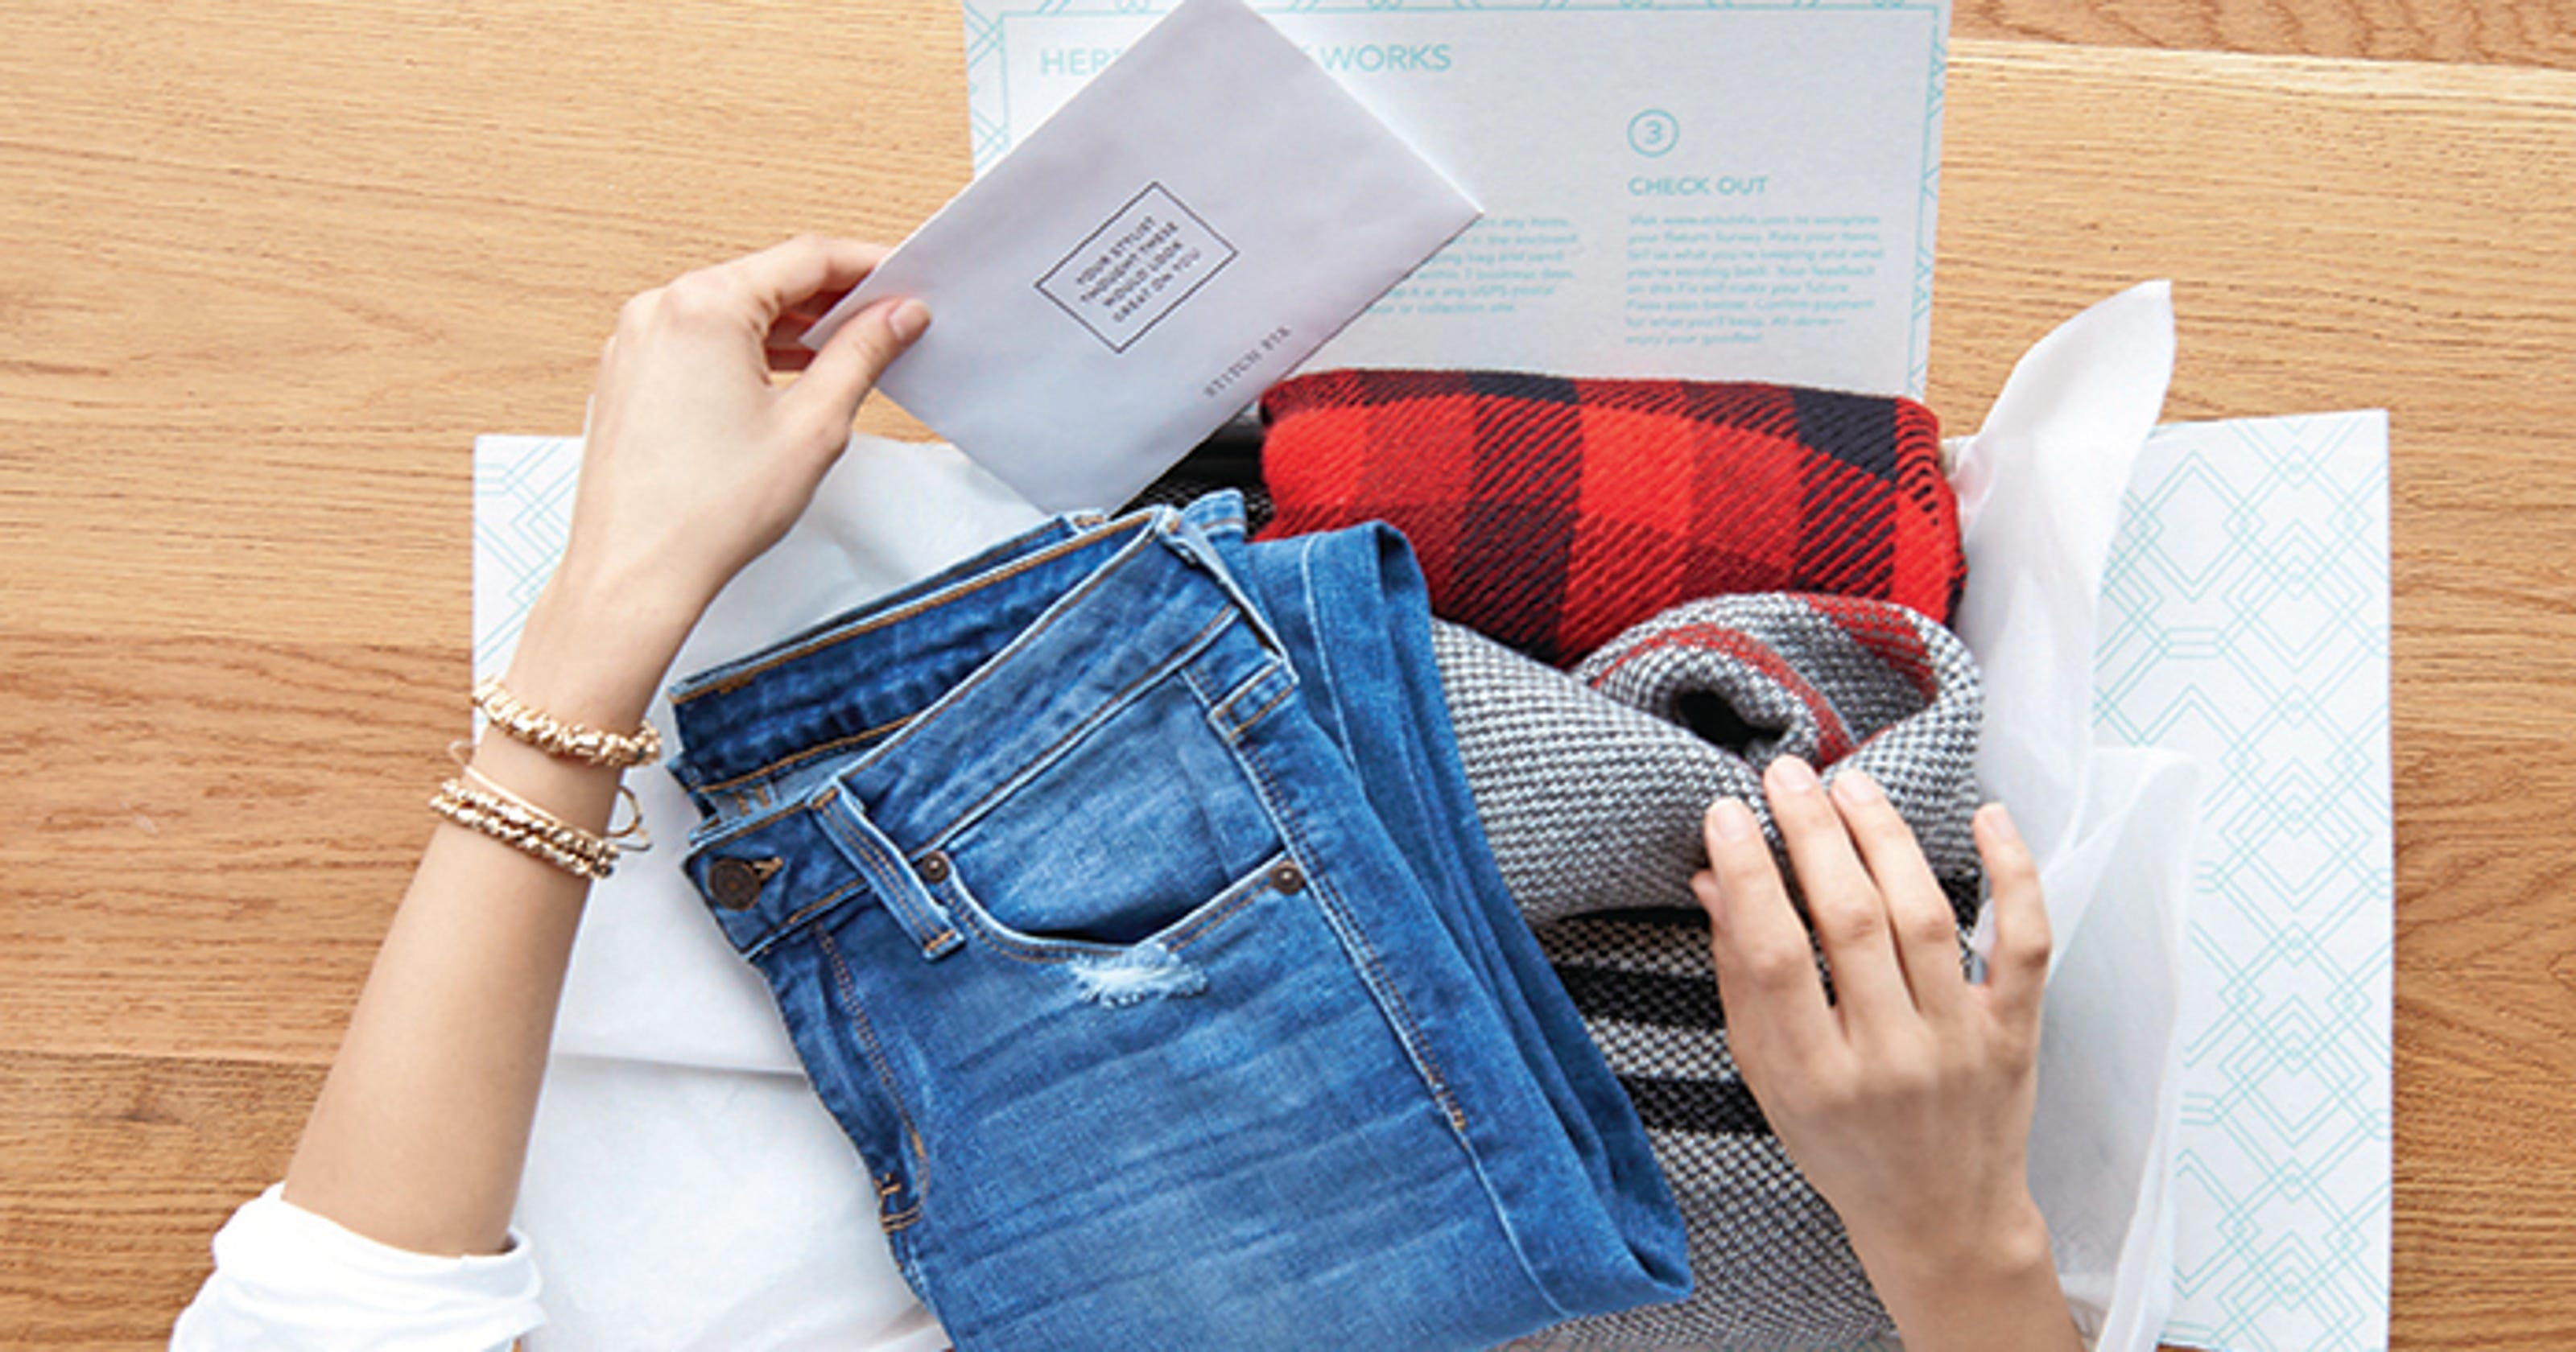 c534ccdc49de Stitch Fix or Rent the Runway? How to choose an online clothing service.